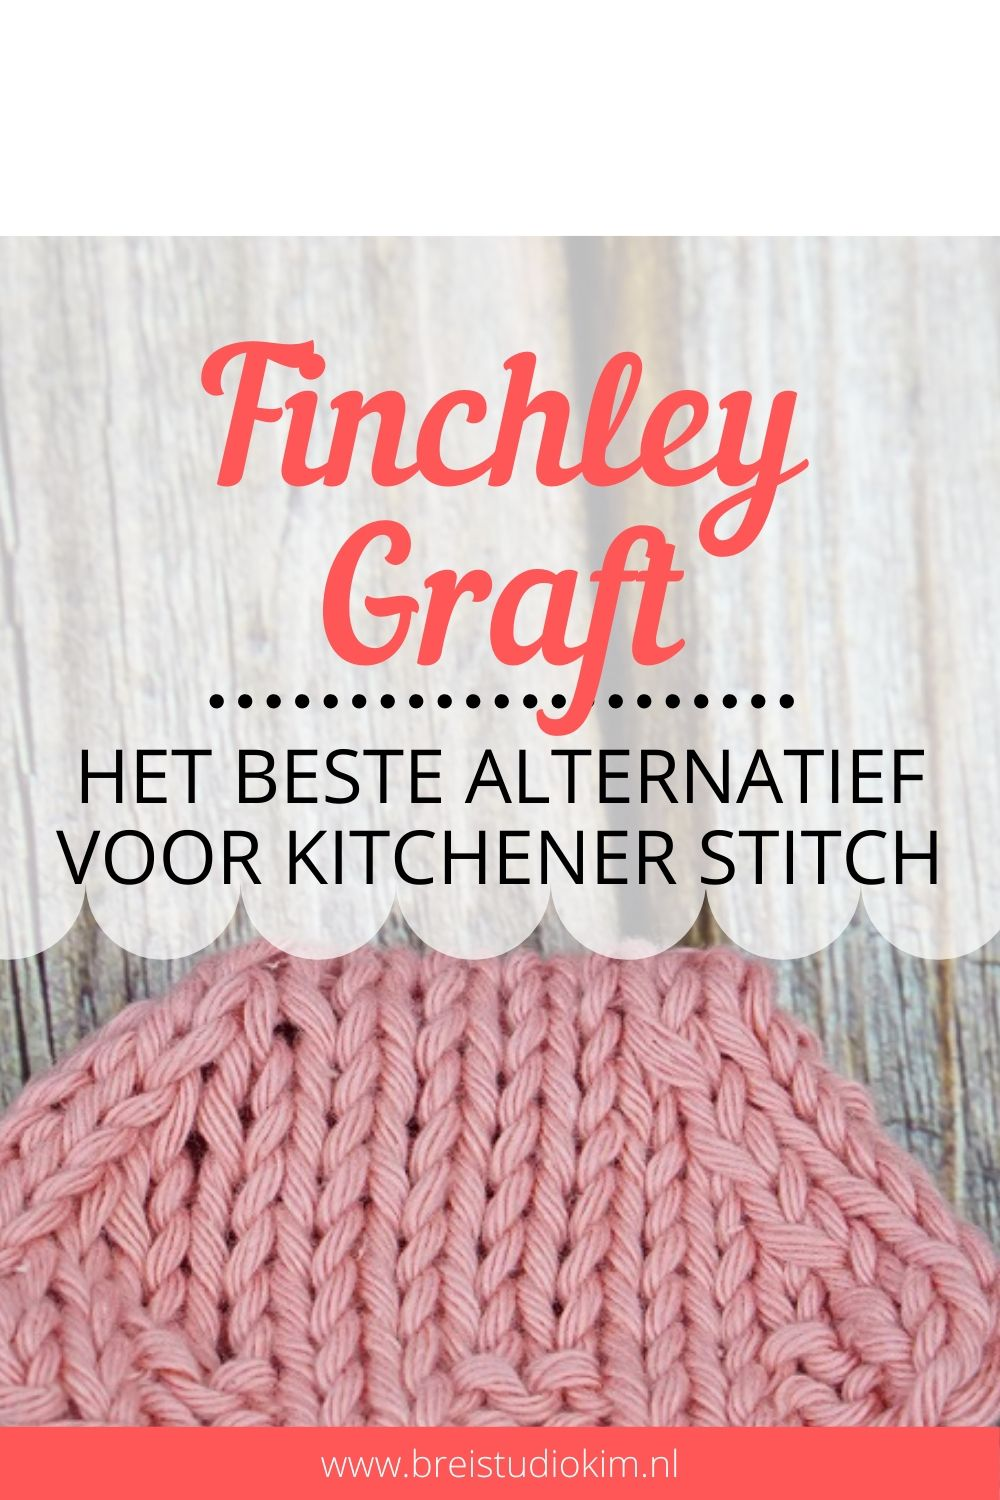 Finchley graft beter dan kitchener stitch